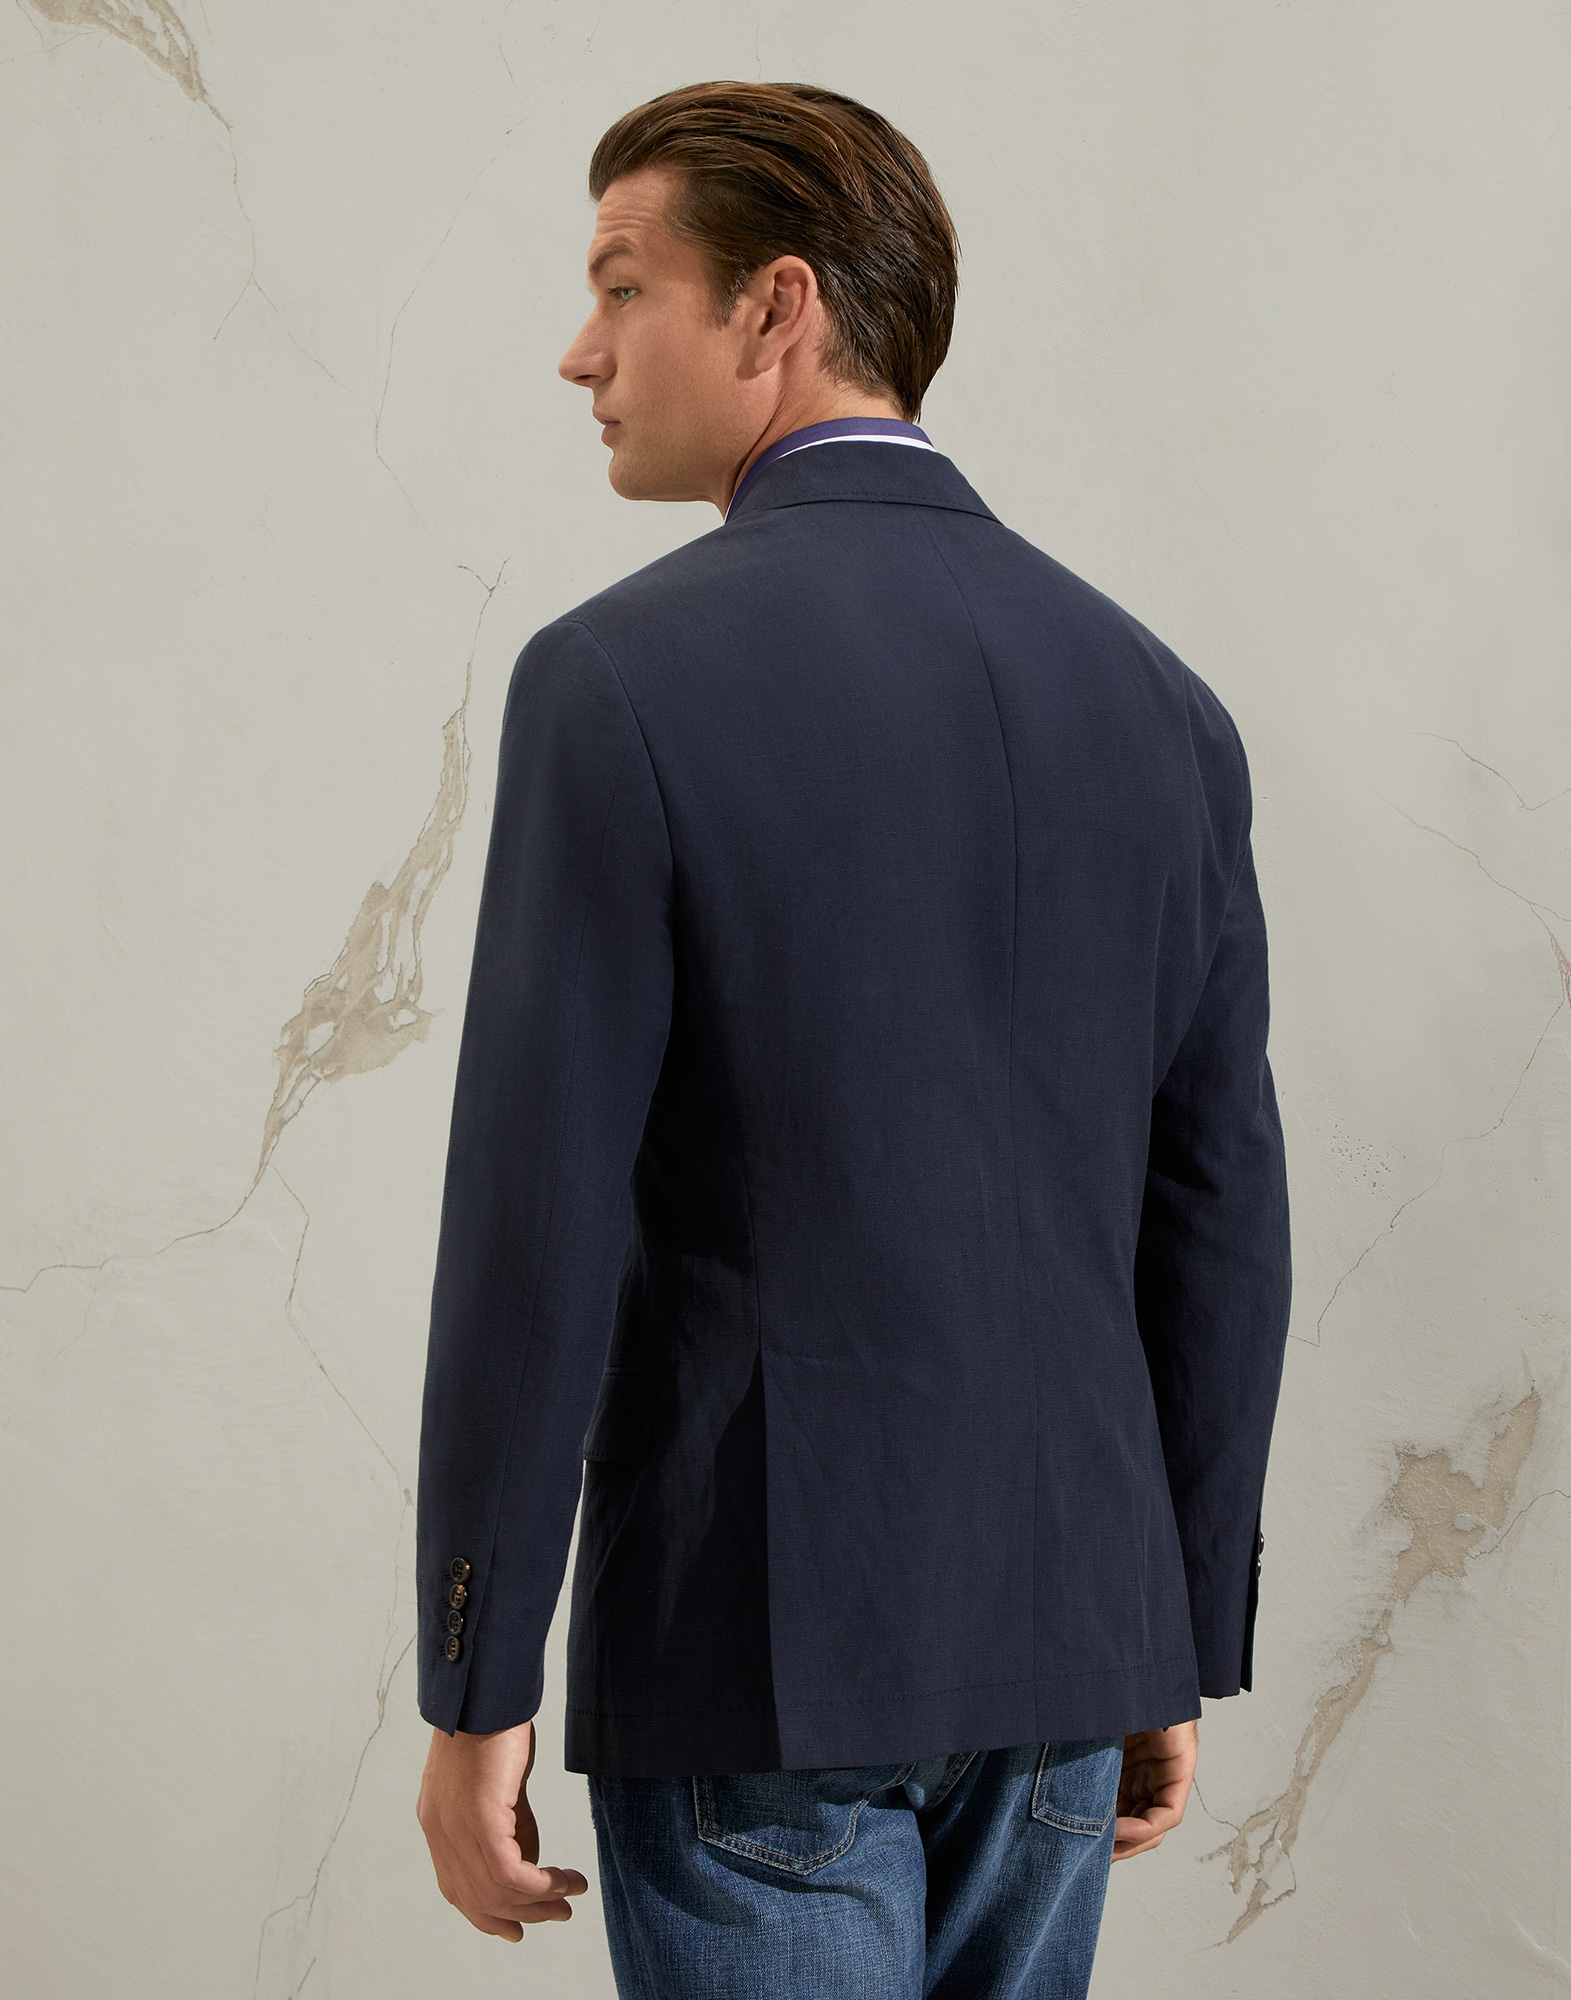 One-and-a-Half-Breasted Blazer - Back